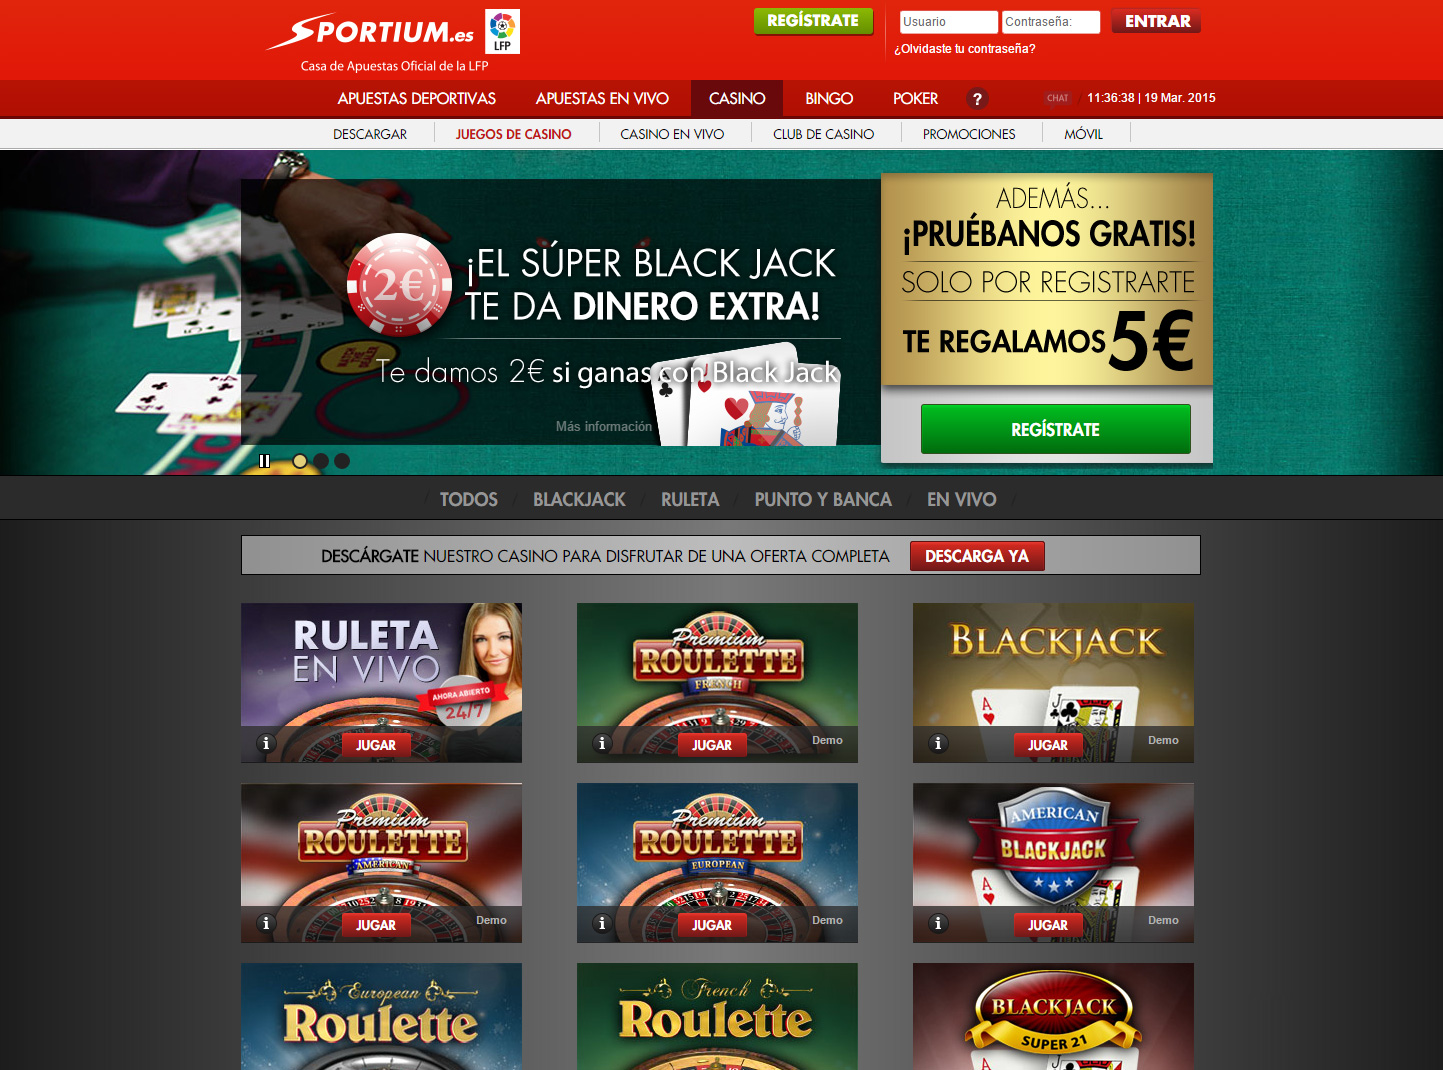 Juega Blackjack en Vivo Online en Casino.com Chile